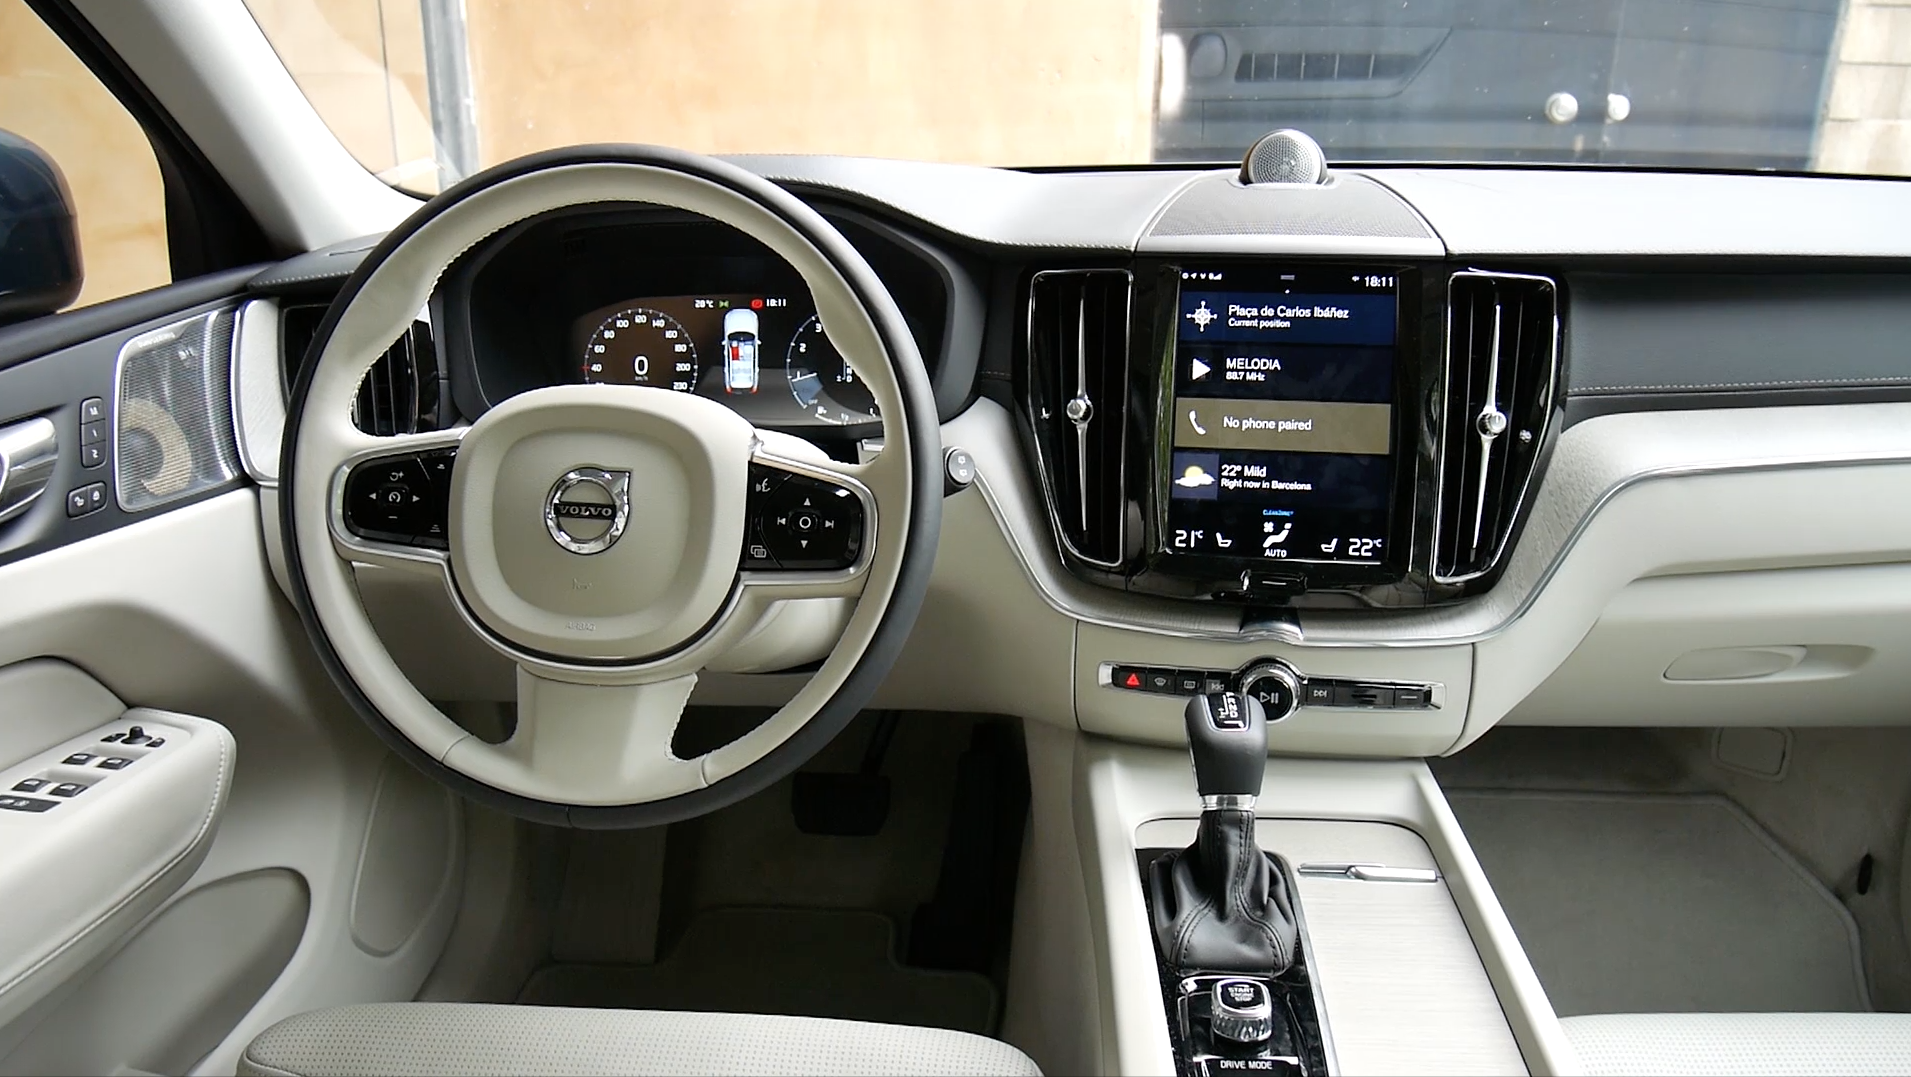 2019 Volvo Xc40 Will Have A Trash Can Tissue Box Holder Autoblog